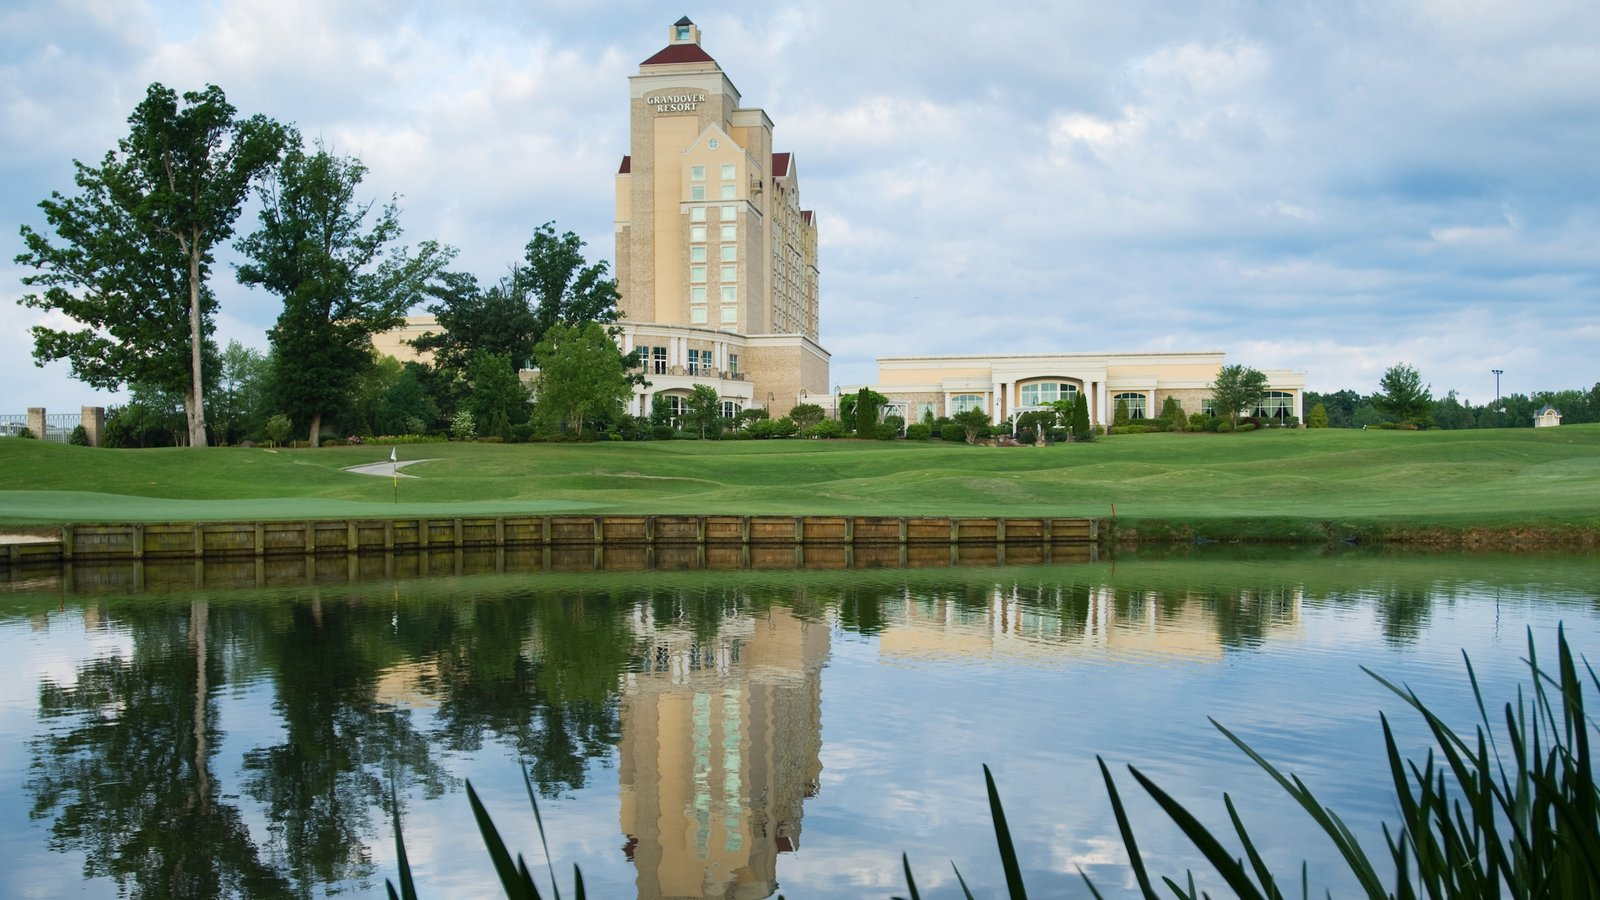 Greensboro which includes golf, a pond and a luxury hotel or resort